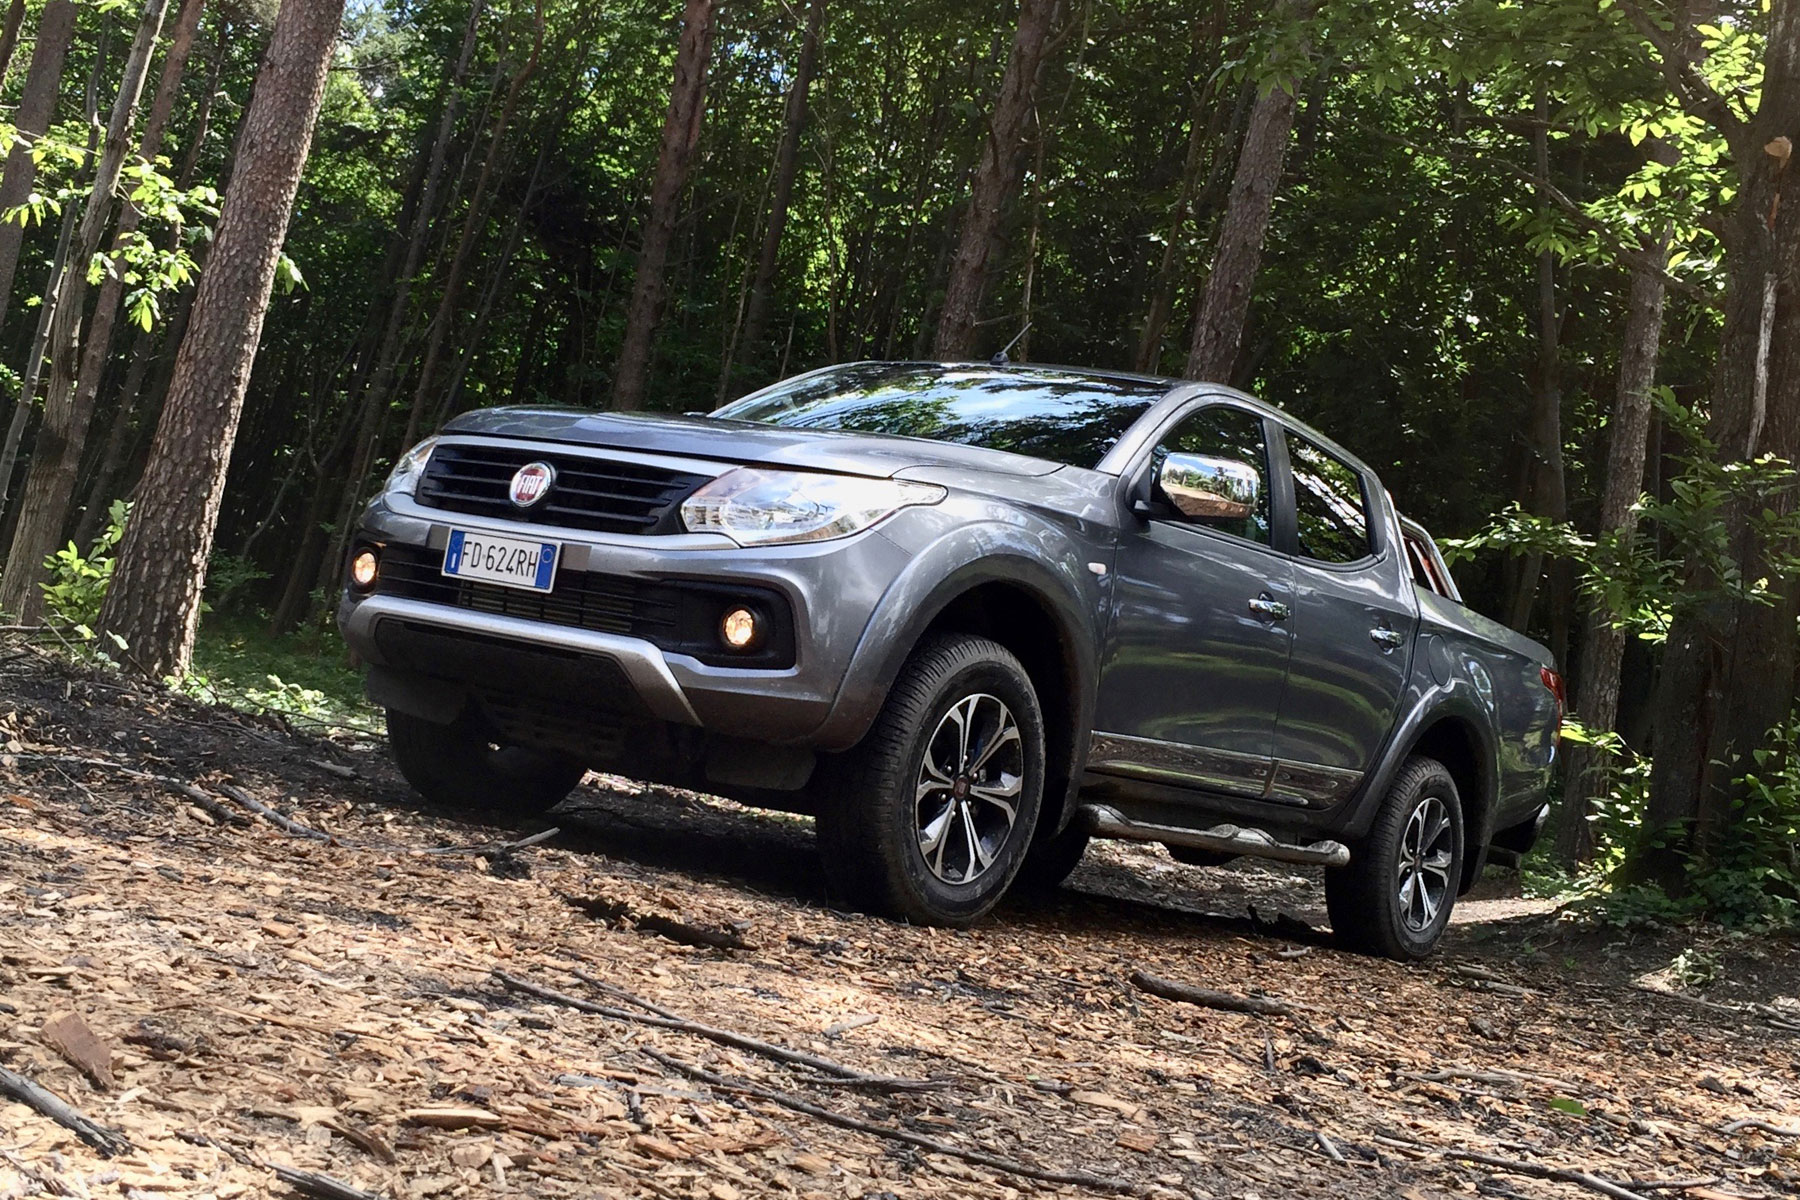 Fiat Fullback off road